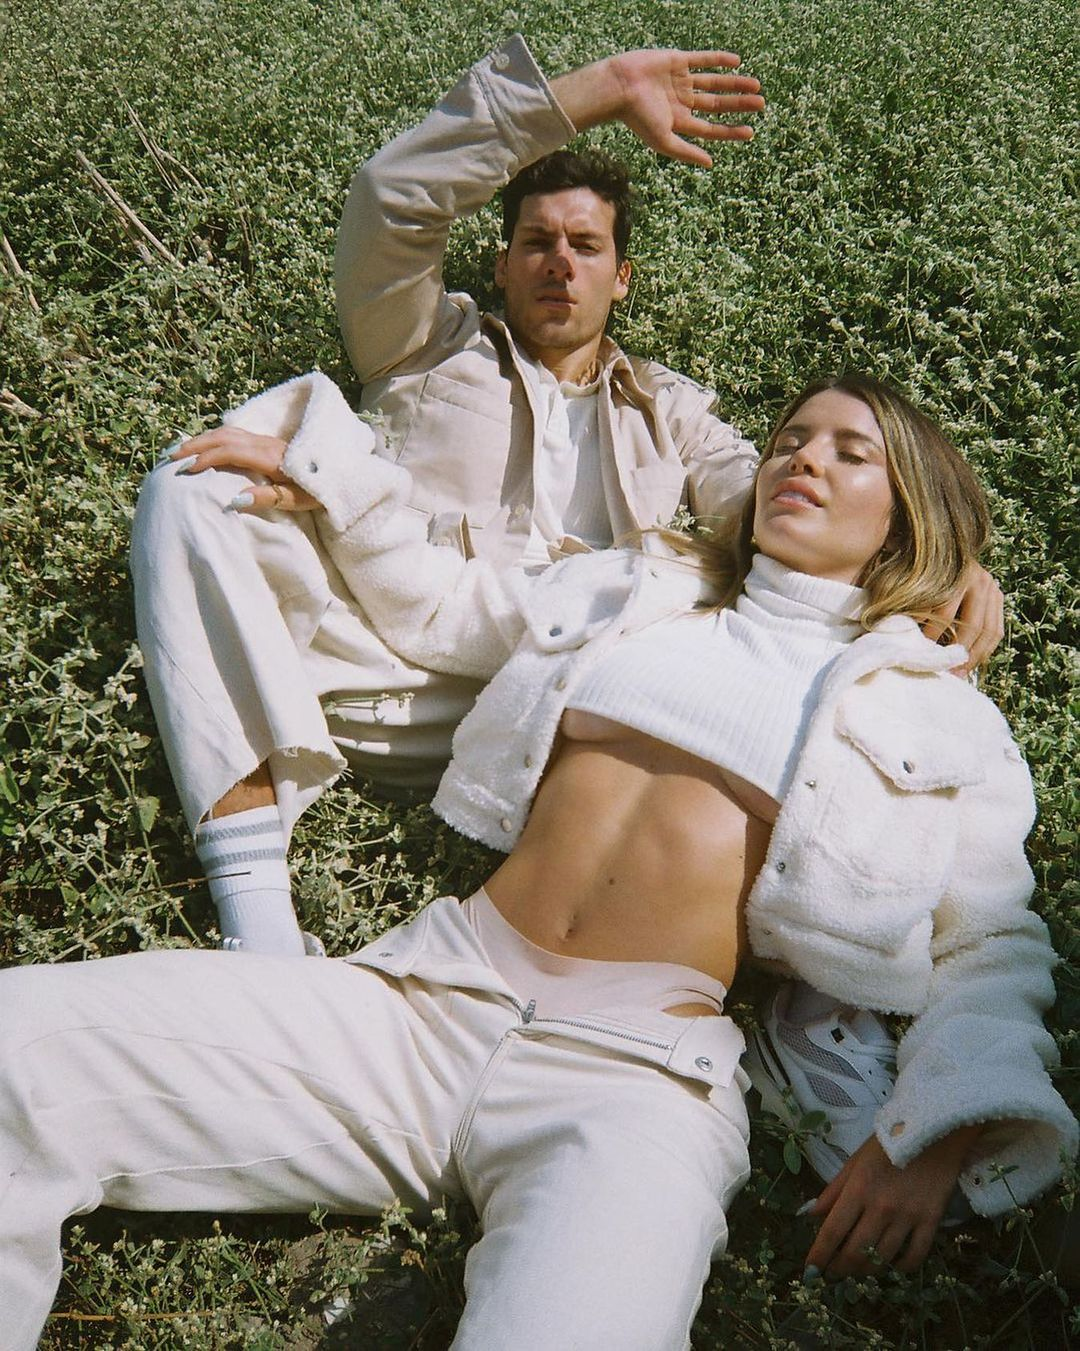 a couple of models lay in the grass